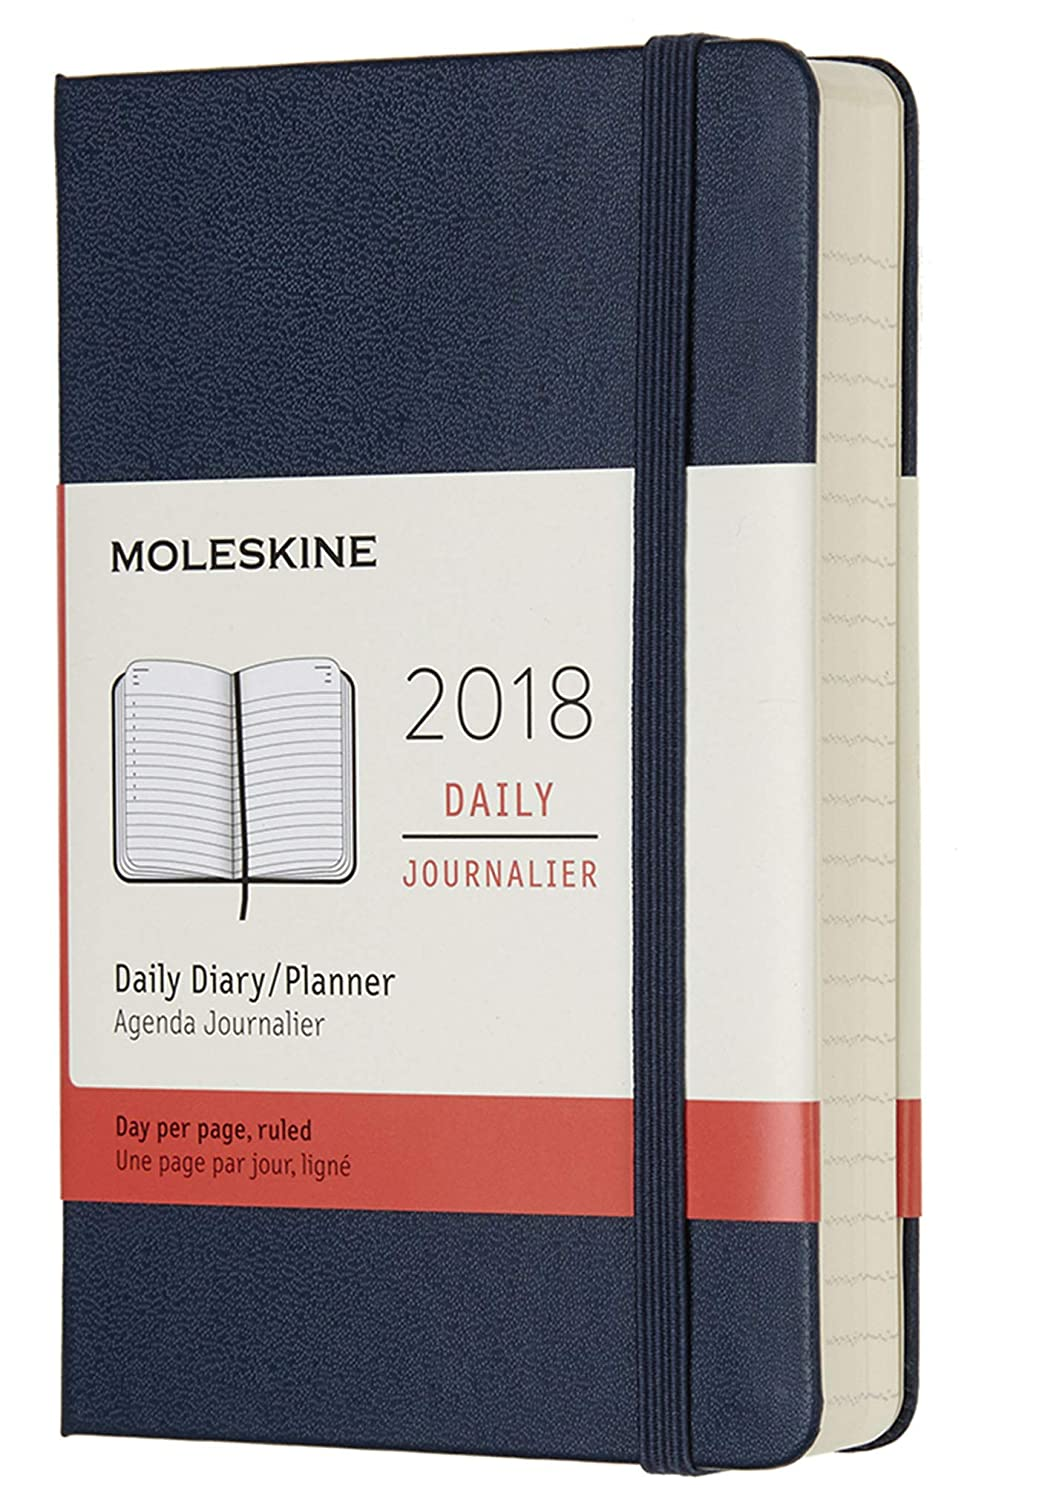 Moleskine 12 Month Daily Planner, Pocket, Sapphire Blue, Hard Cover (3.5 x 5.5)